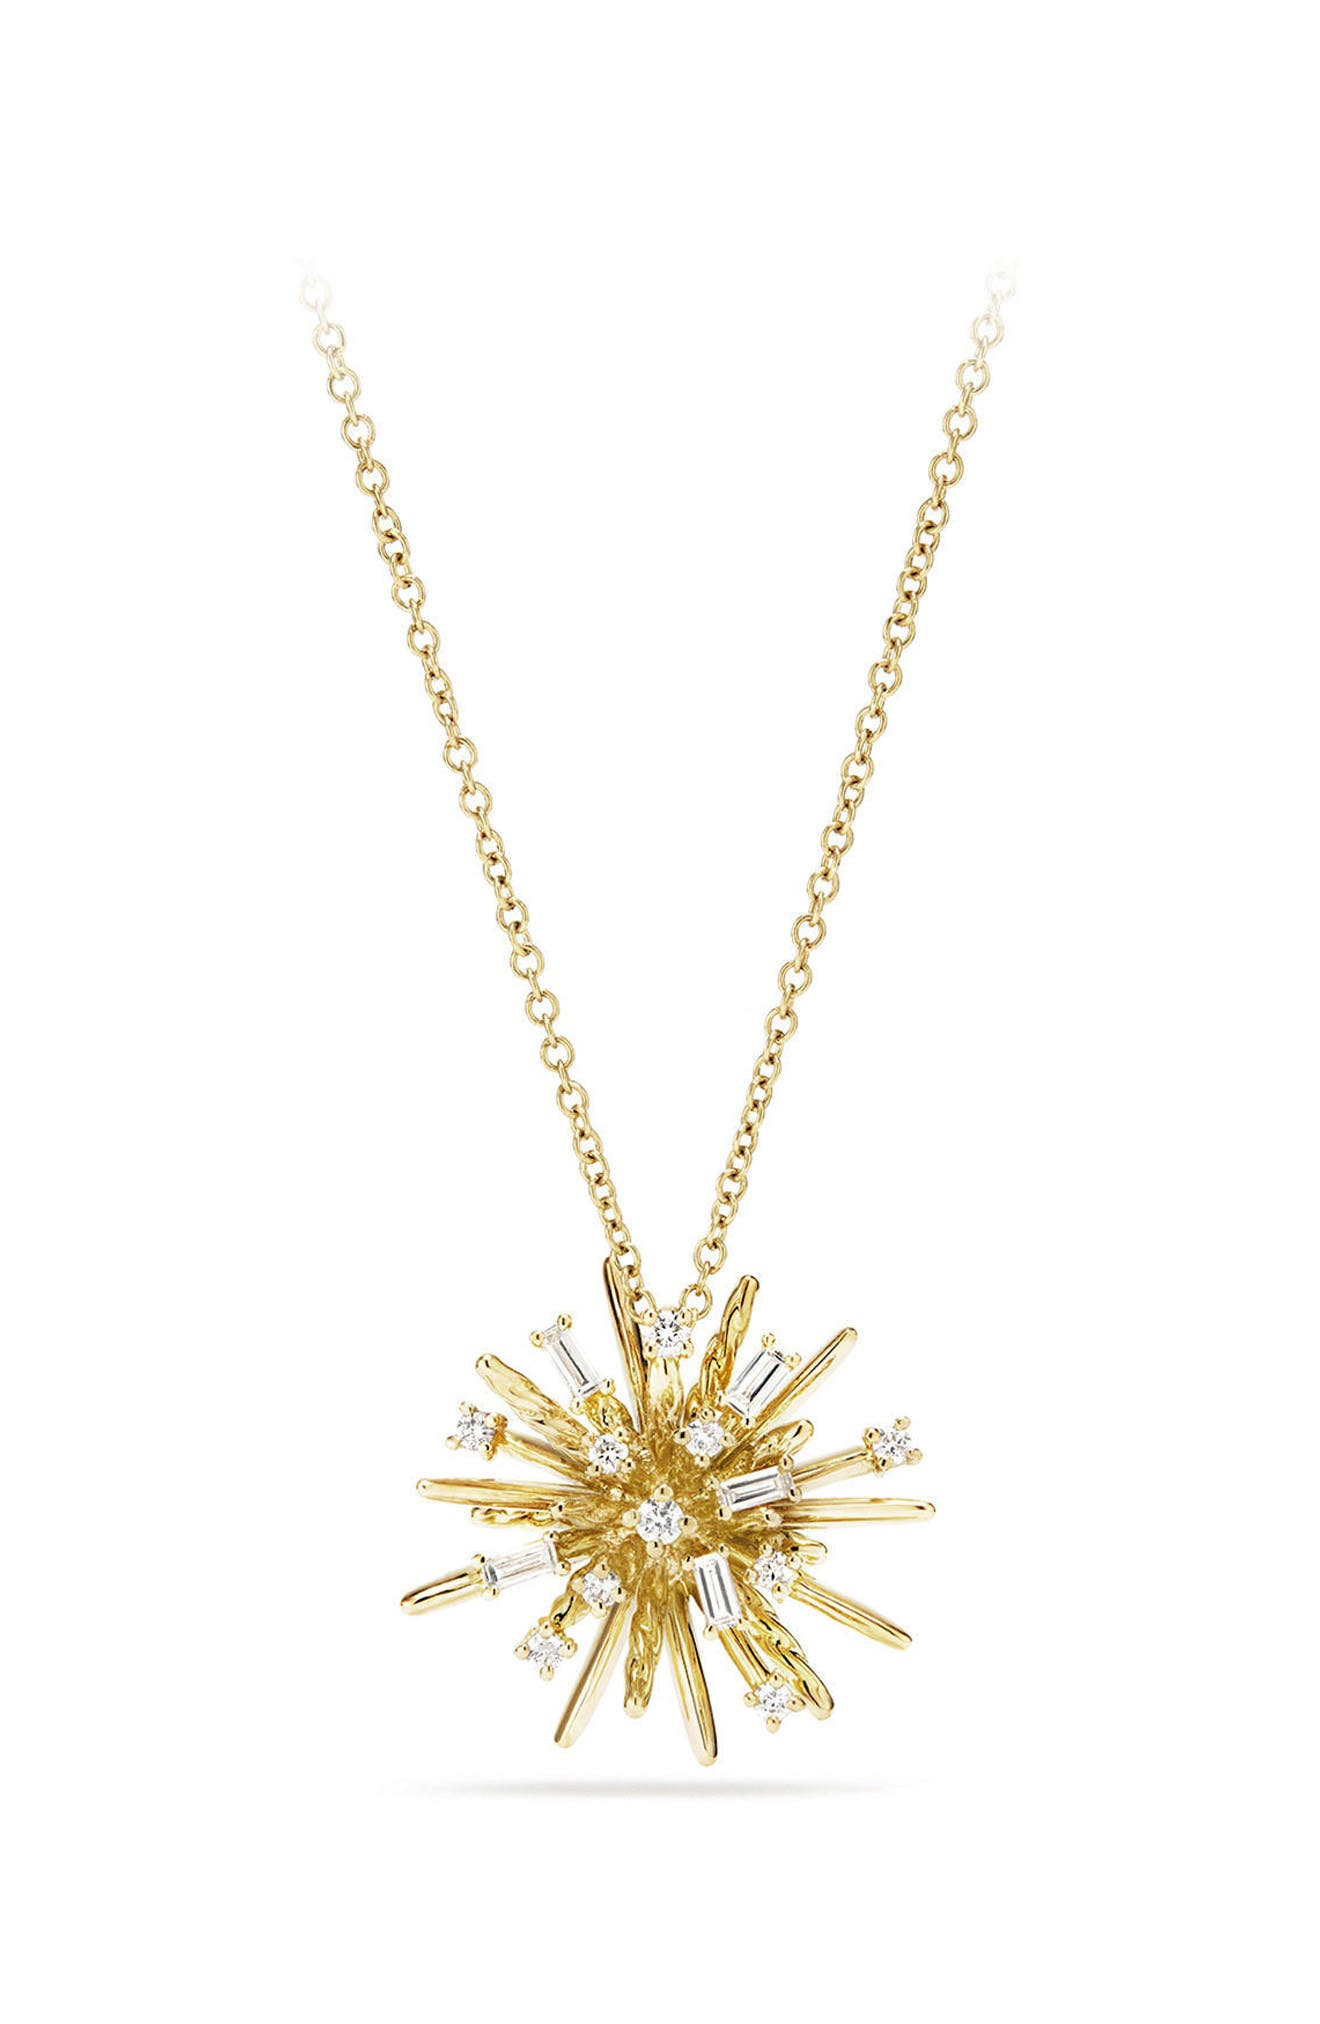 Supernova Small Pendant Necklace with Diamonds in 18K White Gold,                             Main thumbnail 1, color,                             Yellow Gold